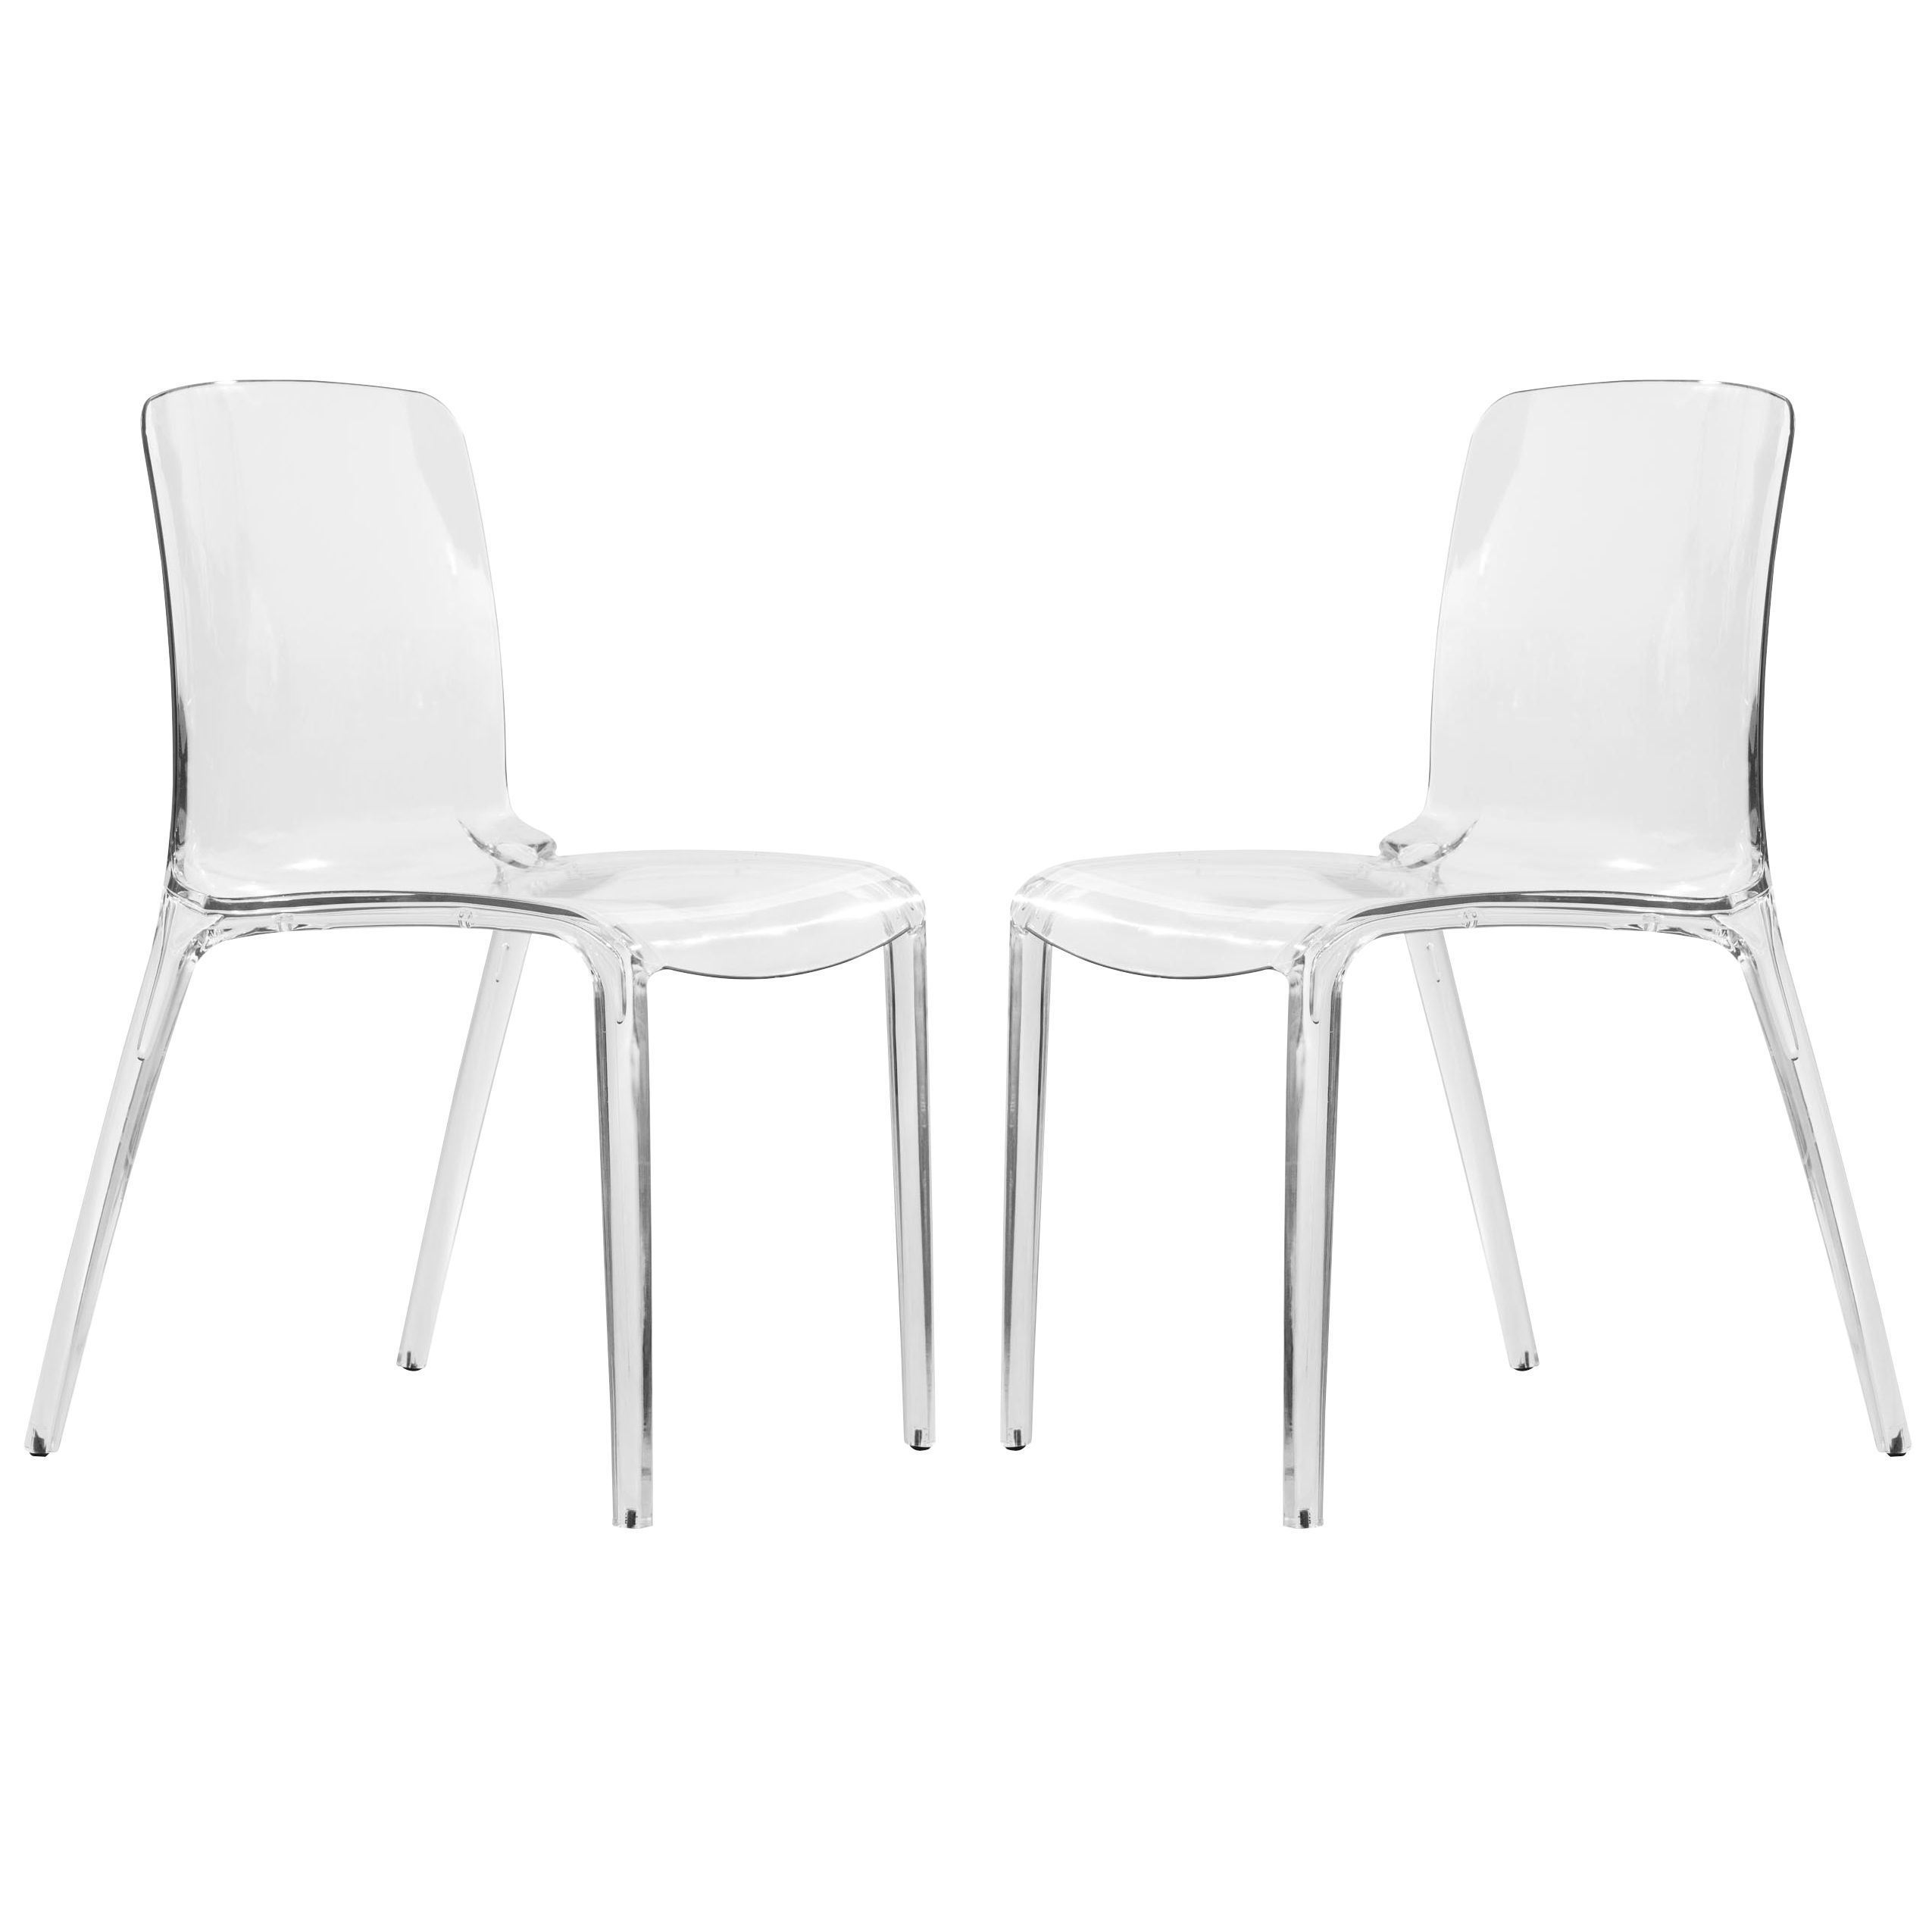 LeisureMod Laos Clear Modern Dining Chair Set of 2 by LeisureMod